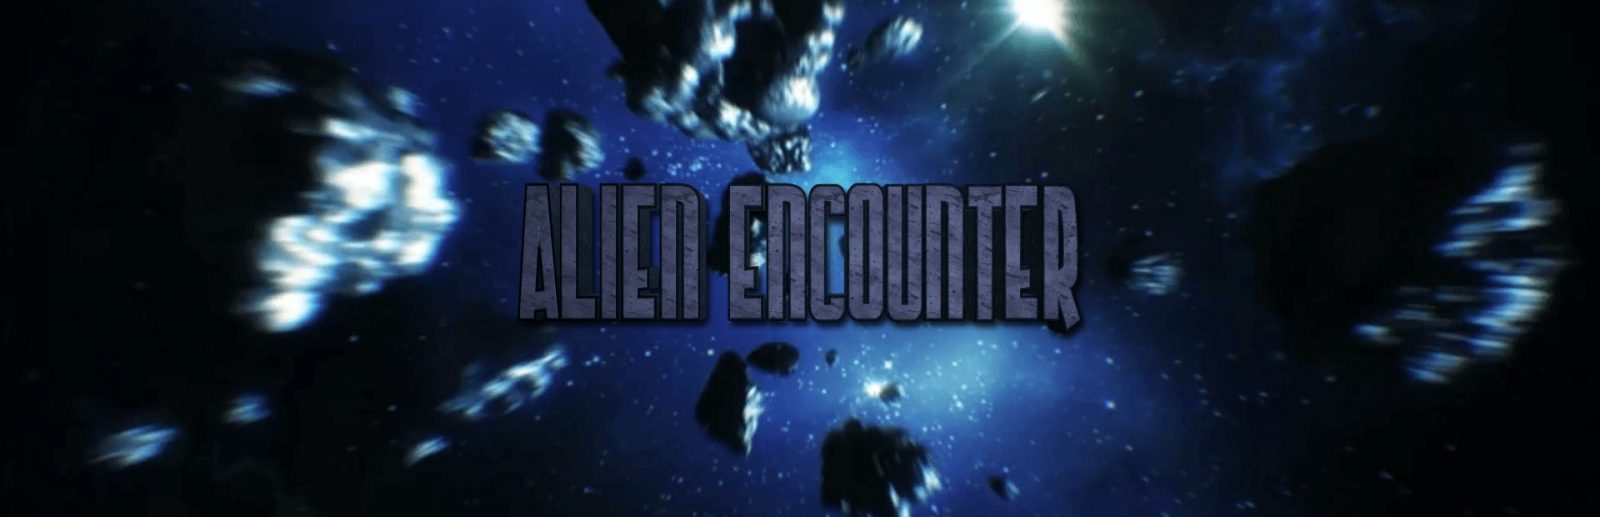 "Clue chase alien encounter escape room banner, the title ""alien encounter"" is displayed over a background of outerspace."